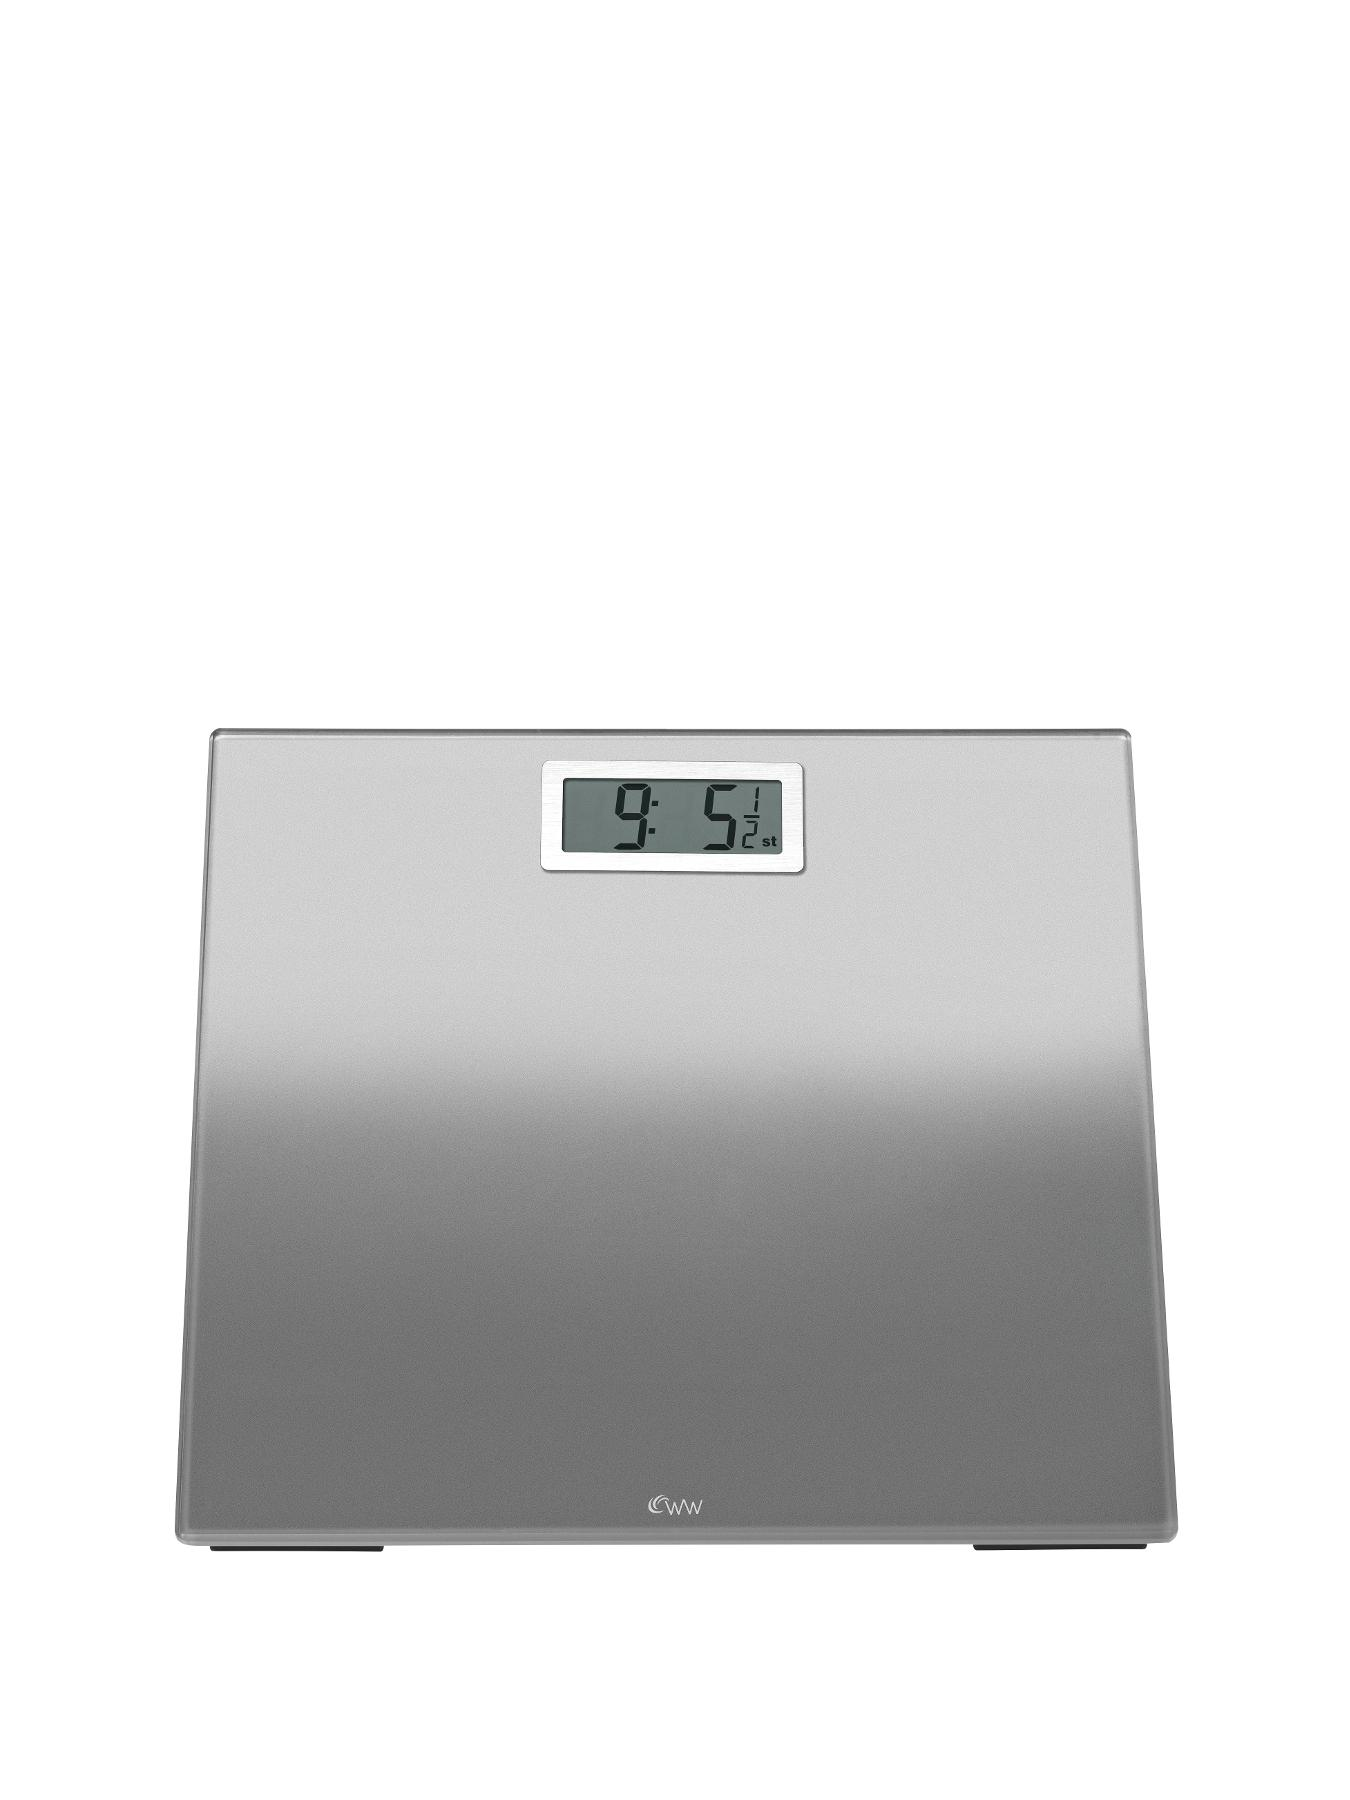 8999U Ultra Slim Designer Glass Scale